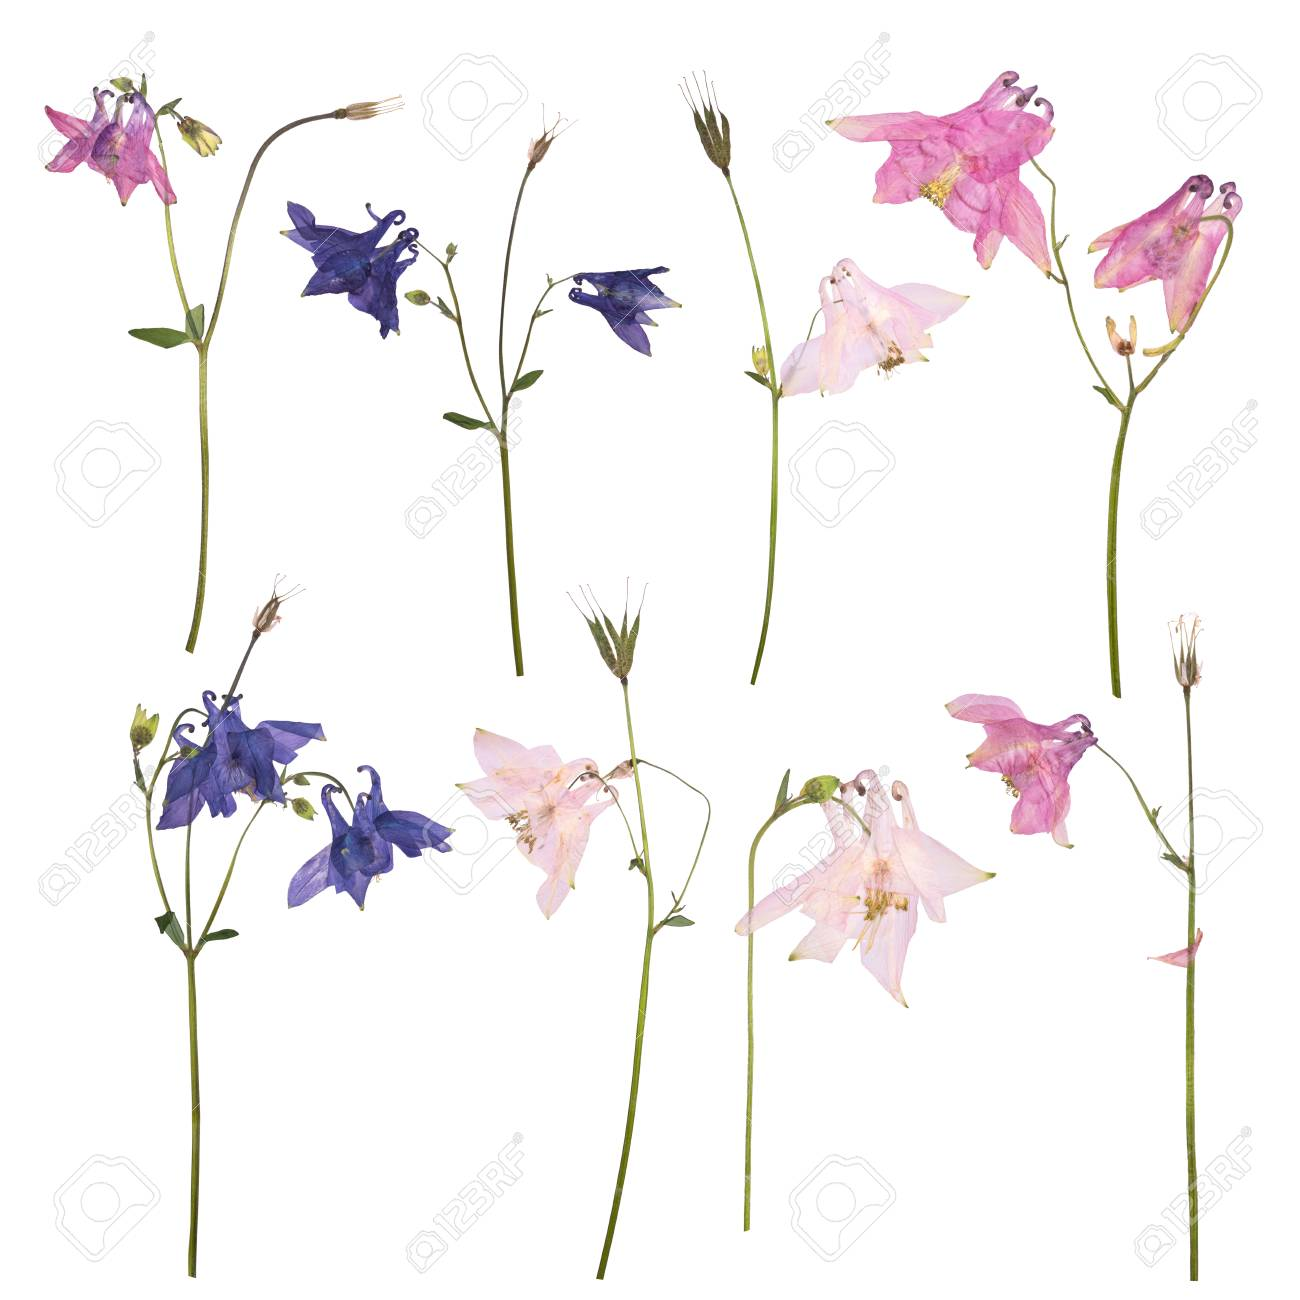 Set Of Dried And Pressed Flowers Of A Pink Blue And Purple